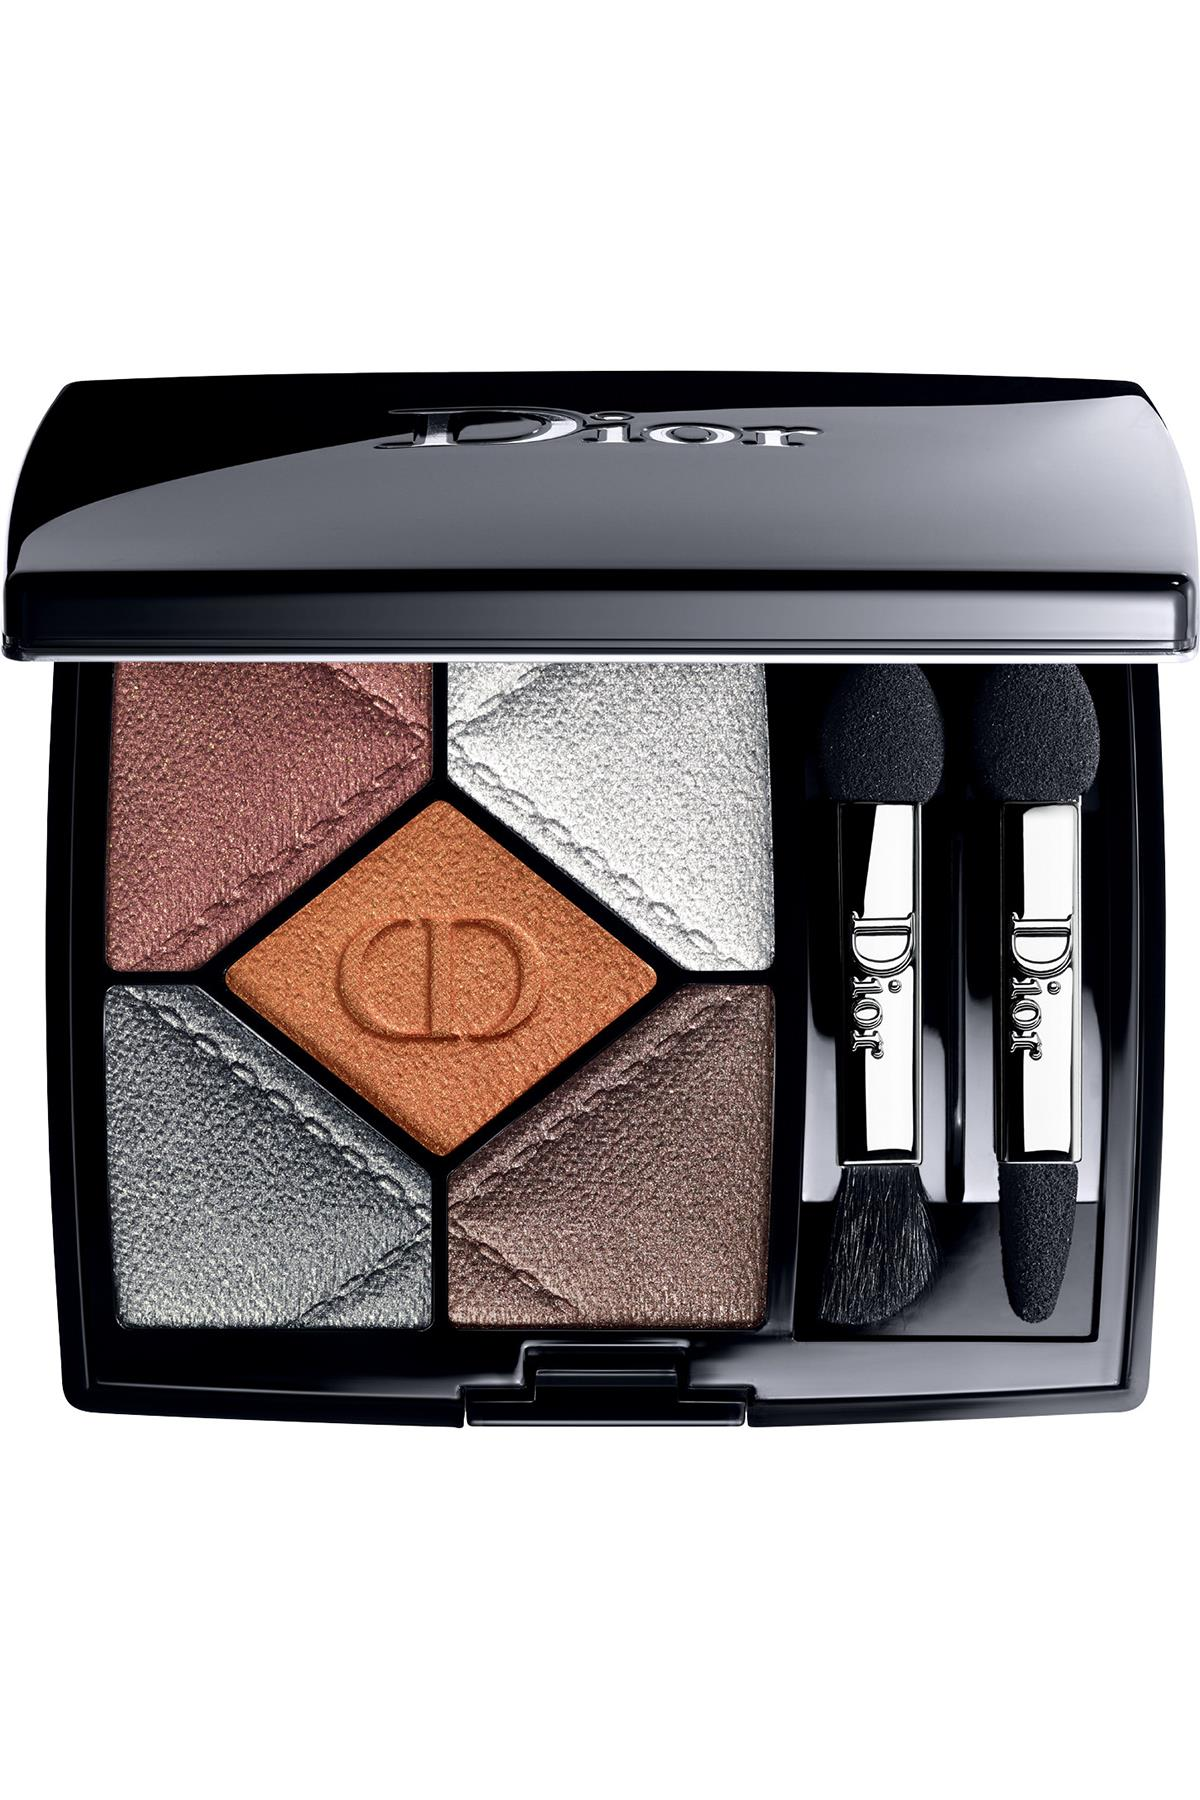 Dior 5 Couleurs Dior En Diable Eyeshadow Palette 087 Far Paleti